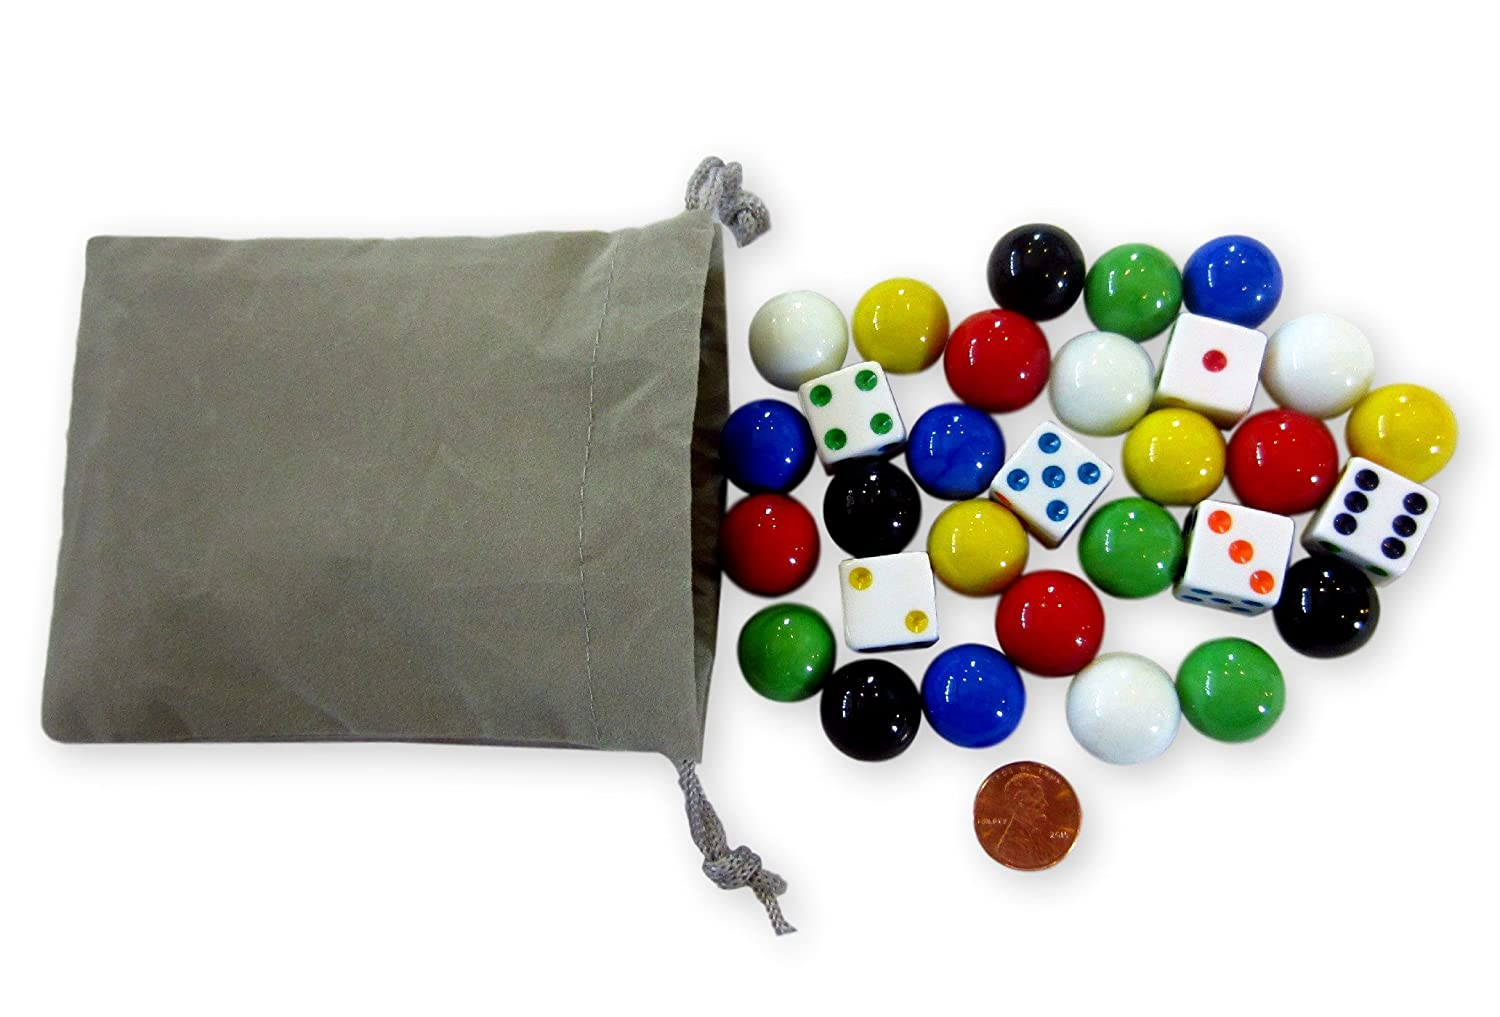 Game Bag of 24 Glass Marbles (17-18mm) and 6 Dice for Aggravation Game AmishToyBox.com